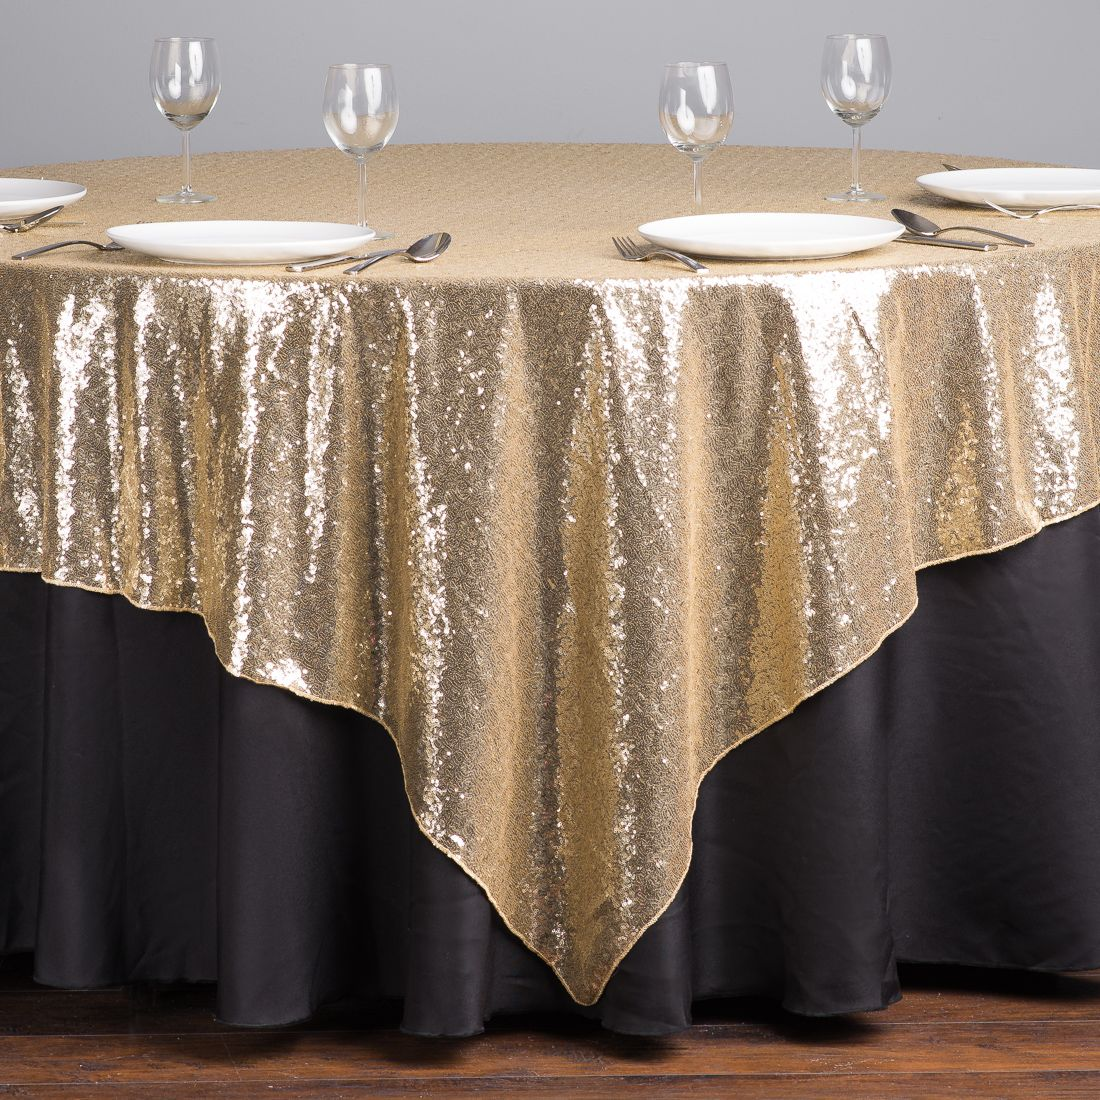 Charming Change The Black To Navy, Keep Gold. Great For The Cake Table.